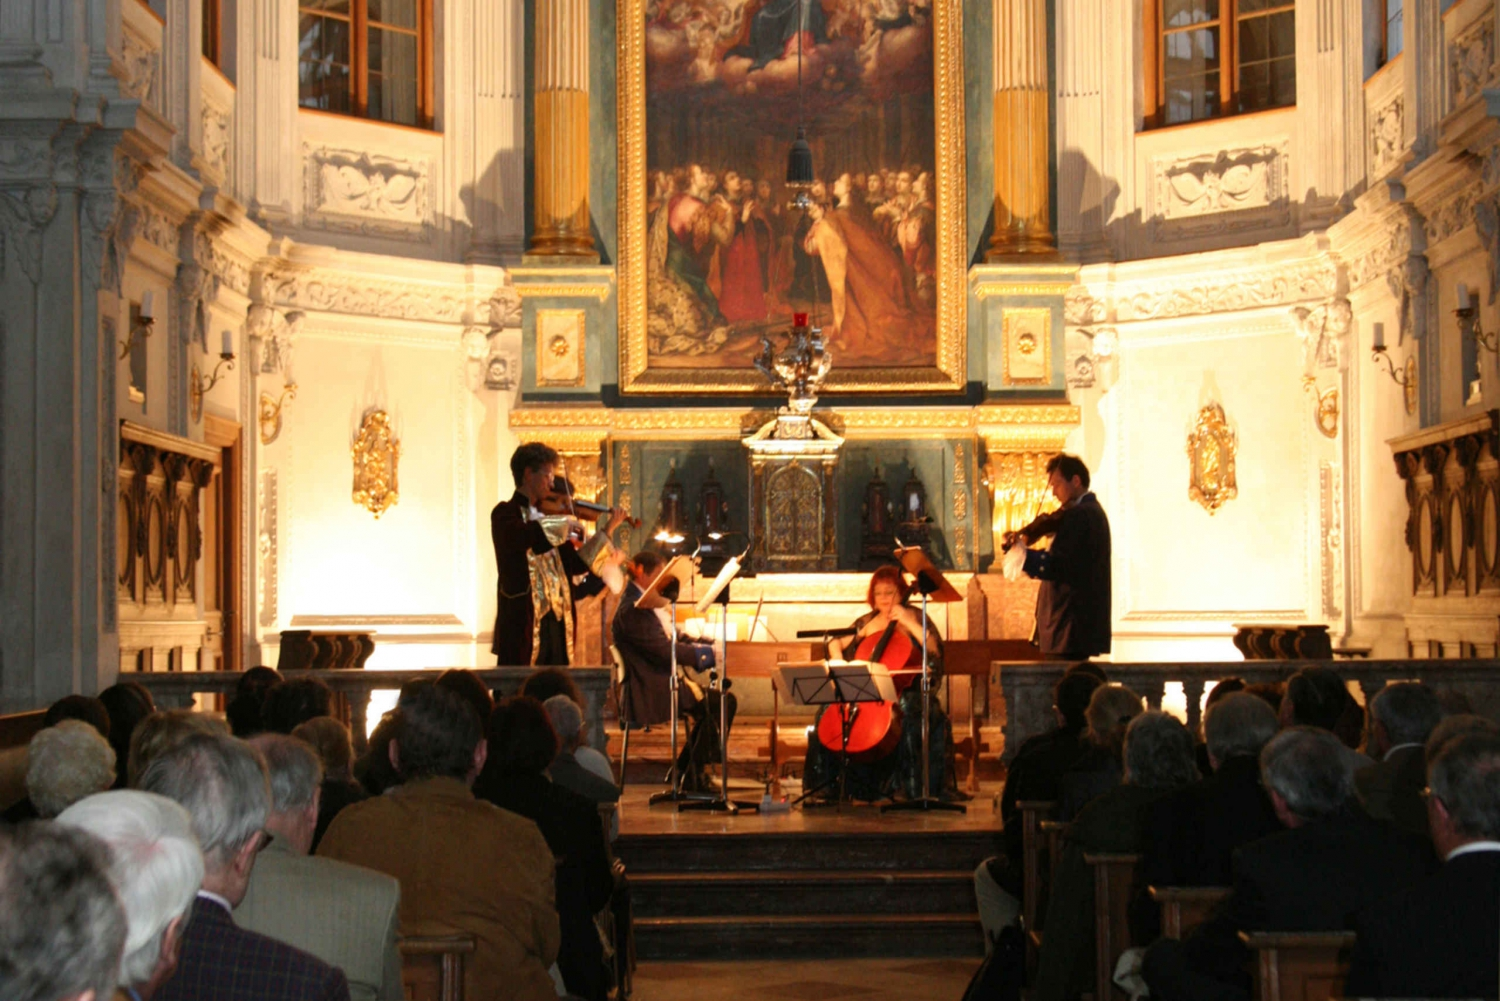 Concert in the Court Chapel of the Residenz